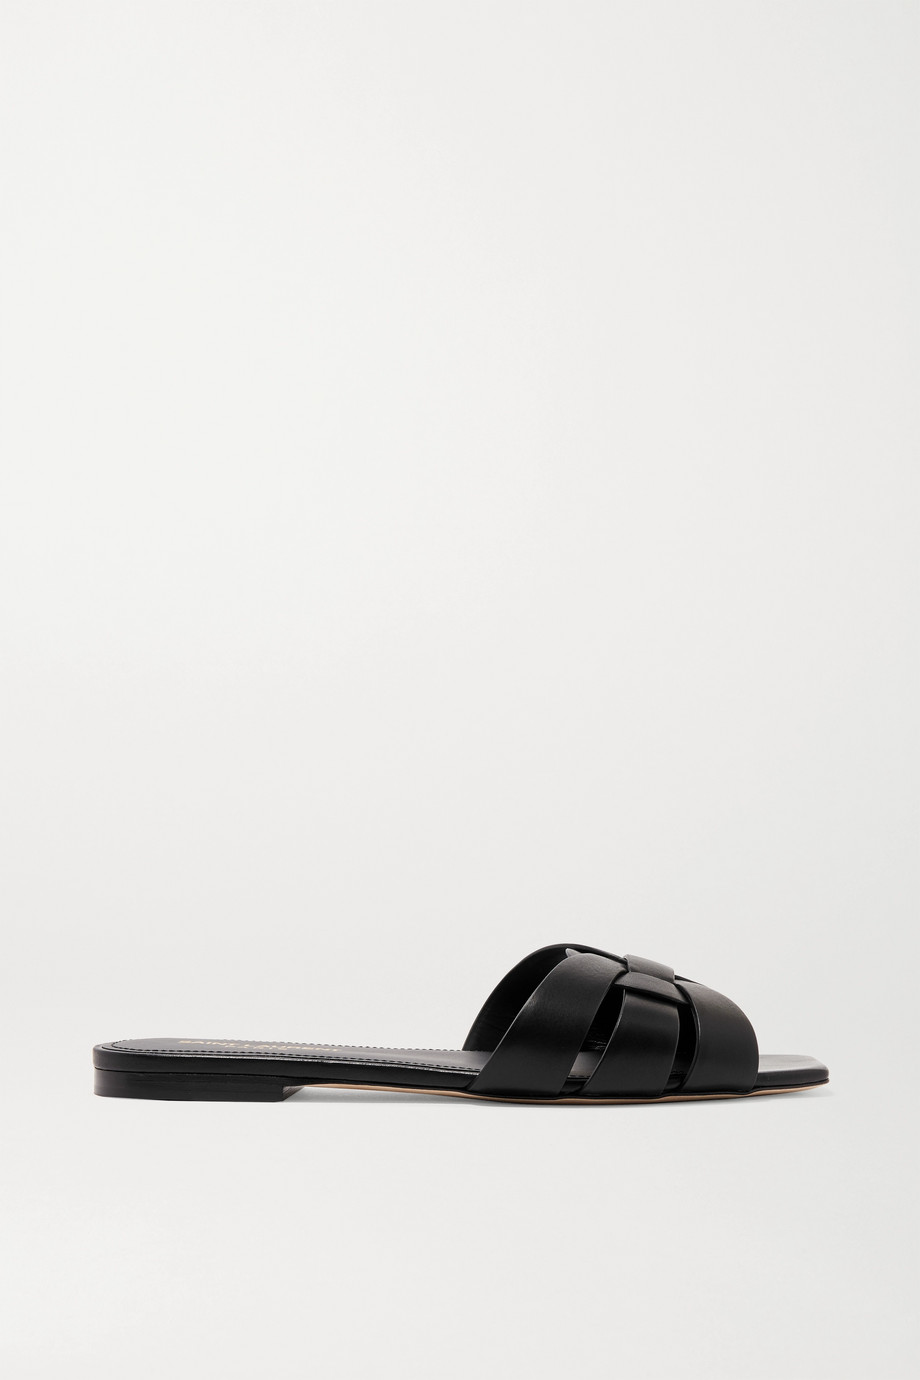 SAINT LAURENT Nu Pieds woven leather slides